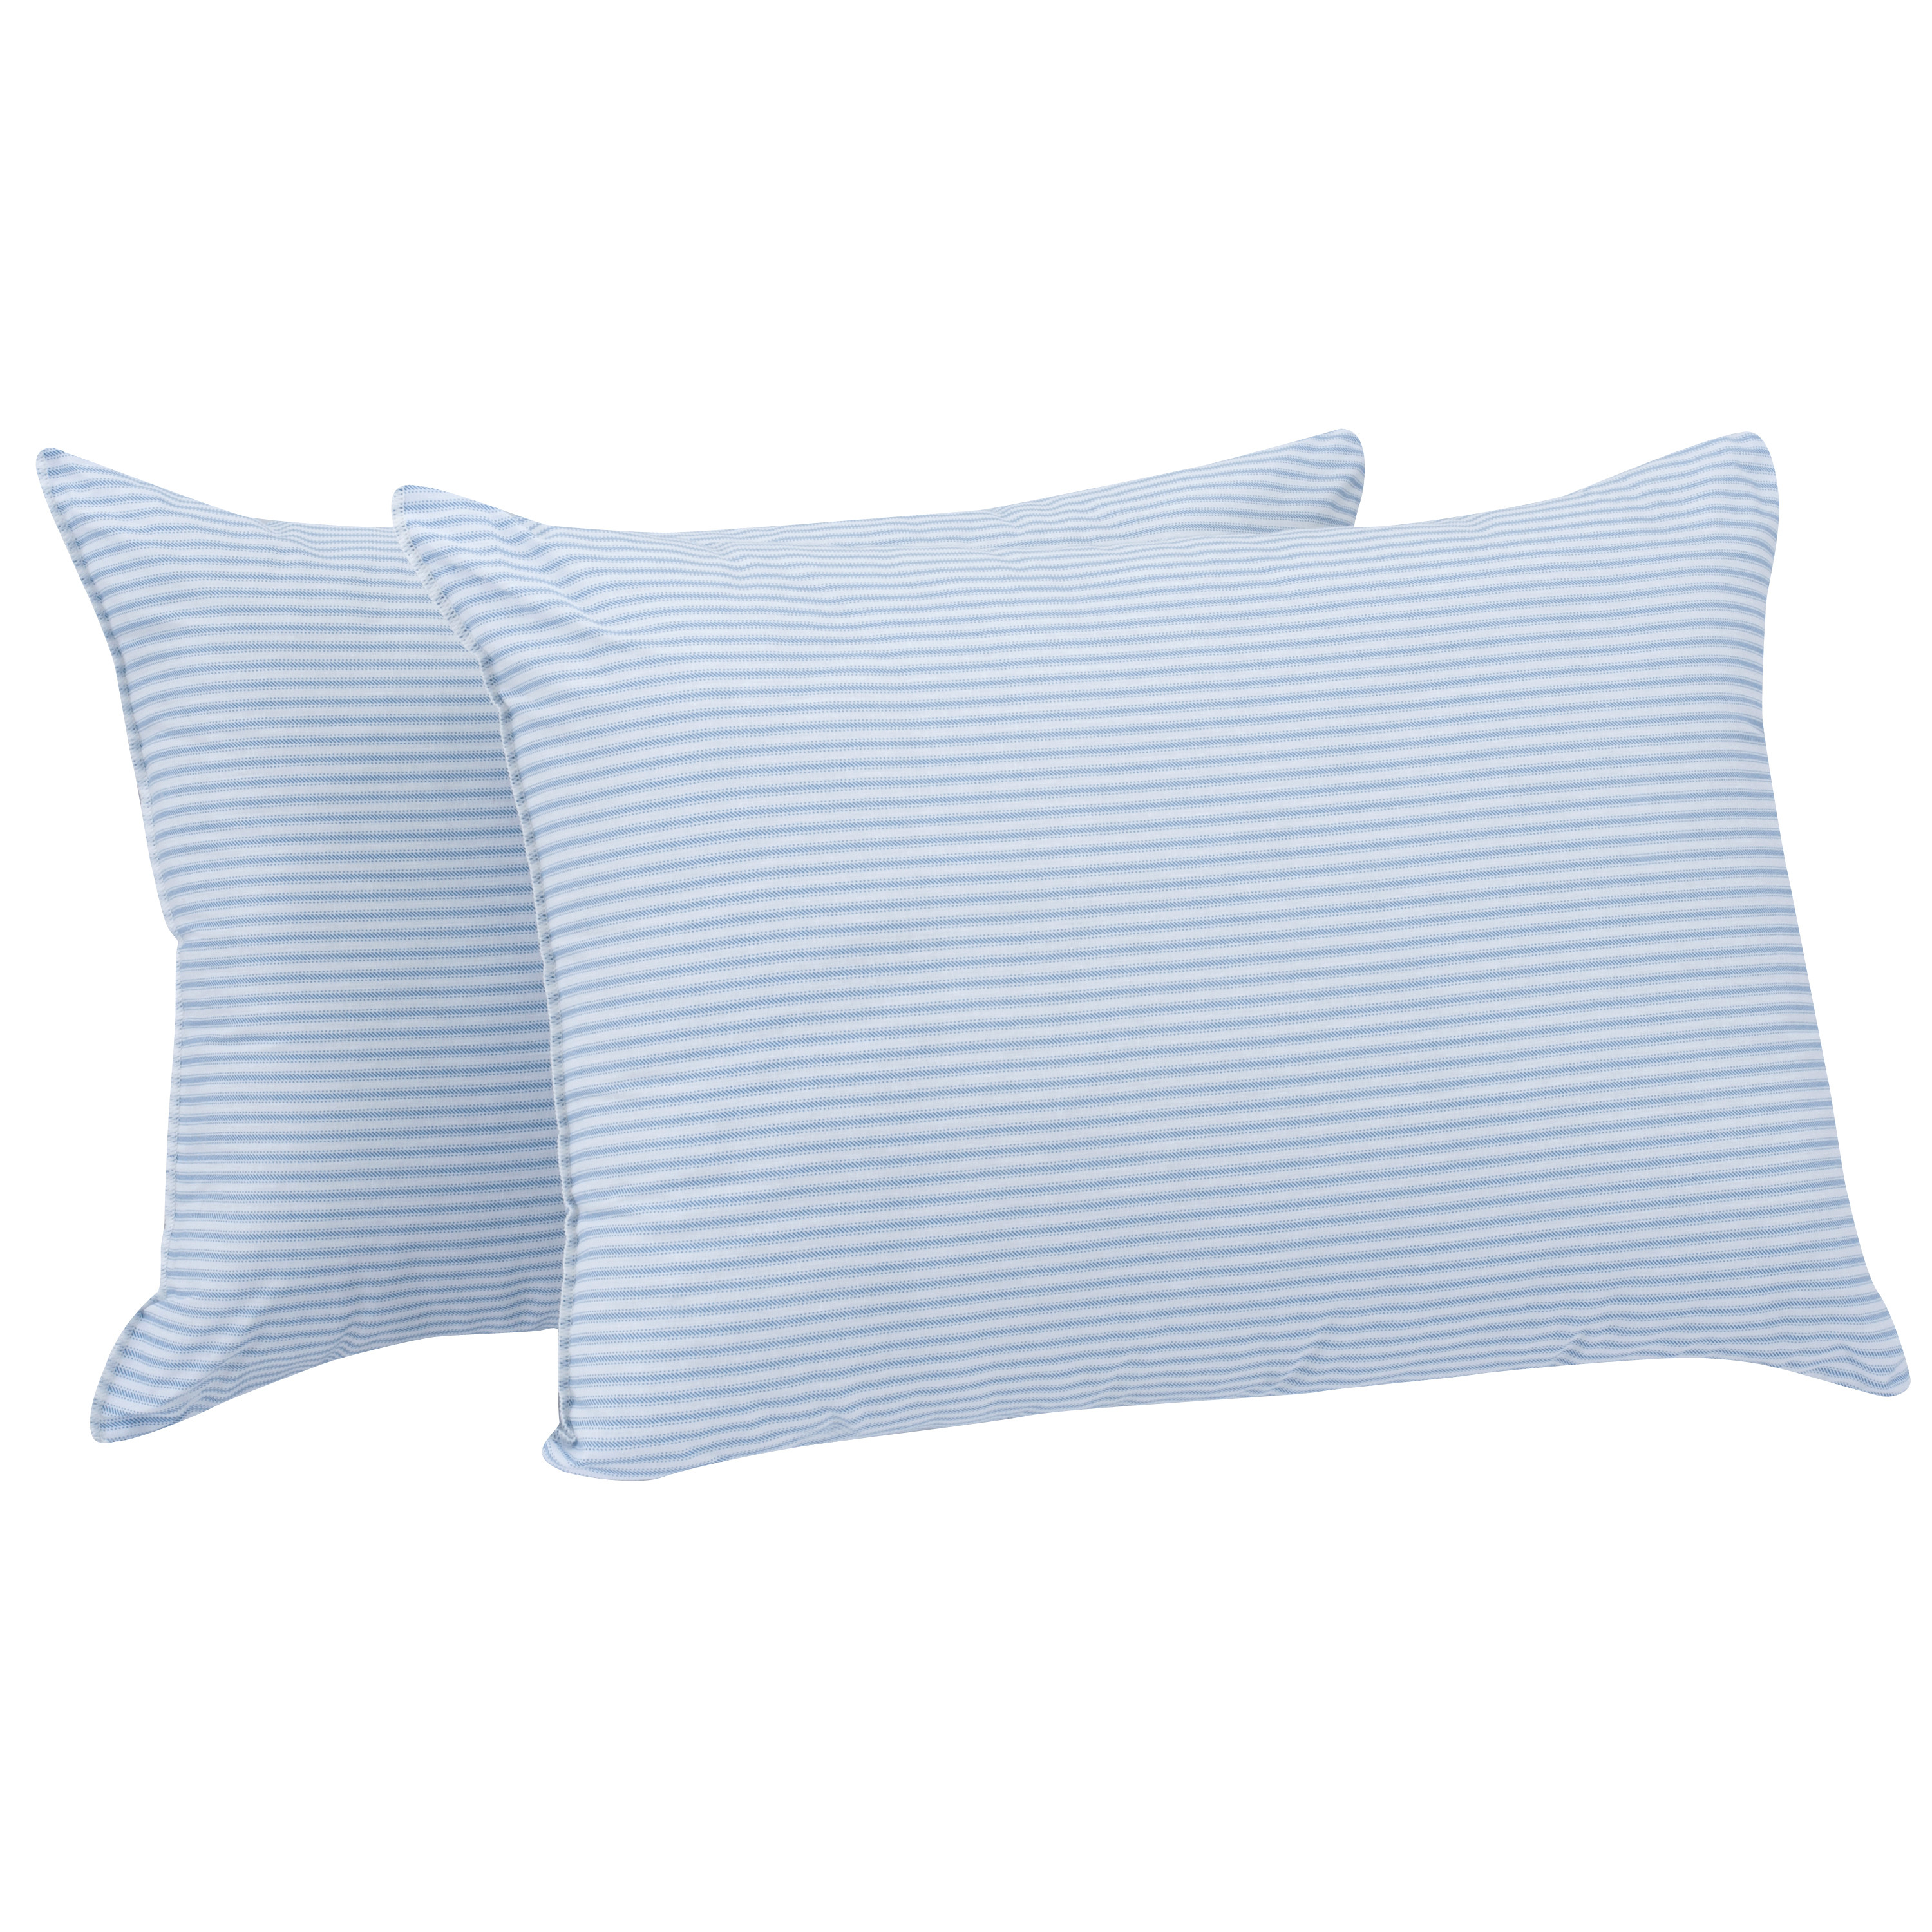 mainstays huge pillow 20 x28 in blue and white stripe set of 2